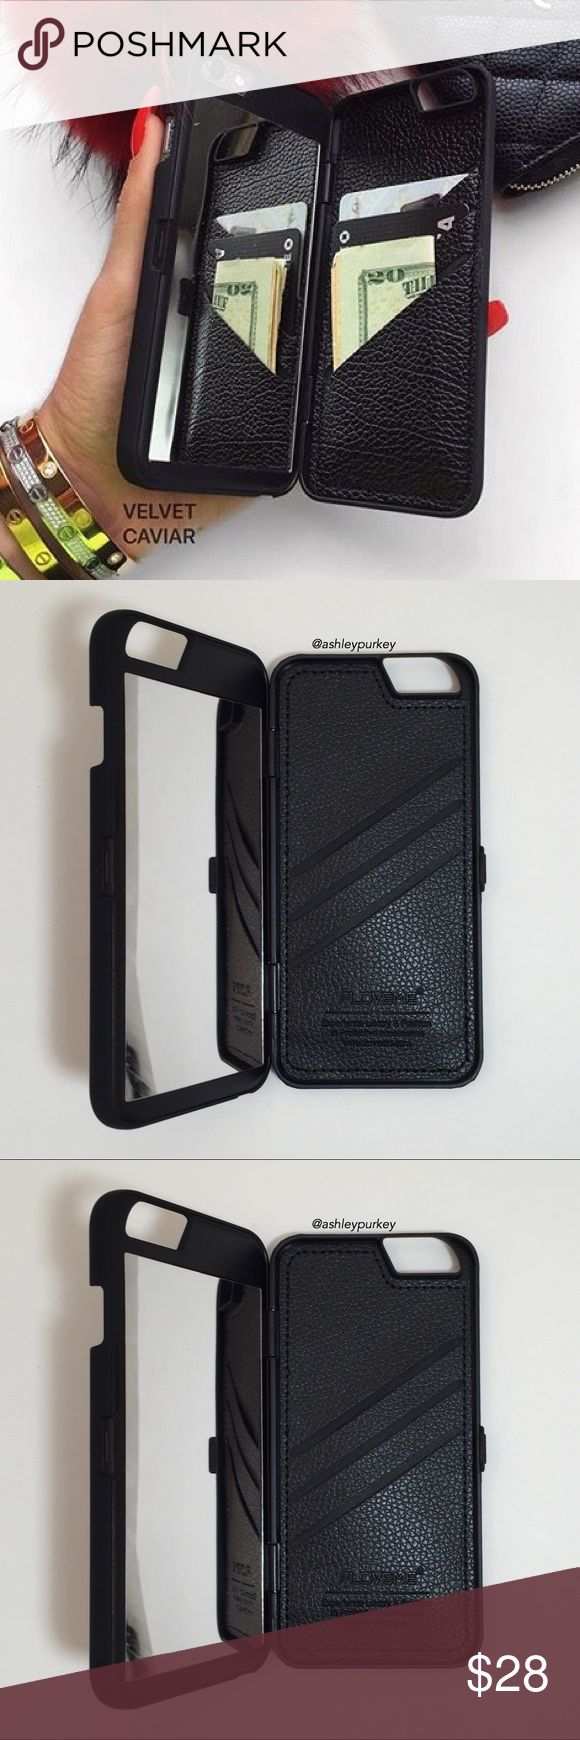 "black mirror wallet iPhone 6 Plus phone case •size: iPhone 6 Plus (5.5"") •features: 3 card slots and a mirror on the inside. closes/opens shut. •no trades •not from Brandy Melville. brand listed for visibility. real brand: B-Long Boutique Brandy Melville Accessories Phone Cases"